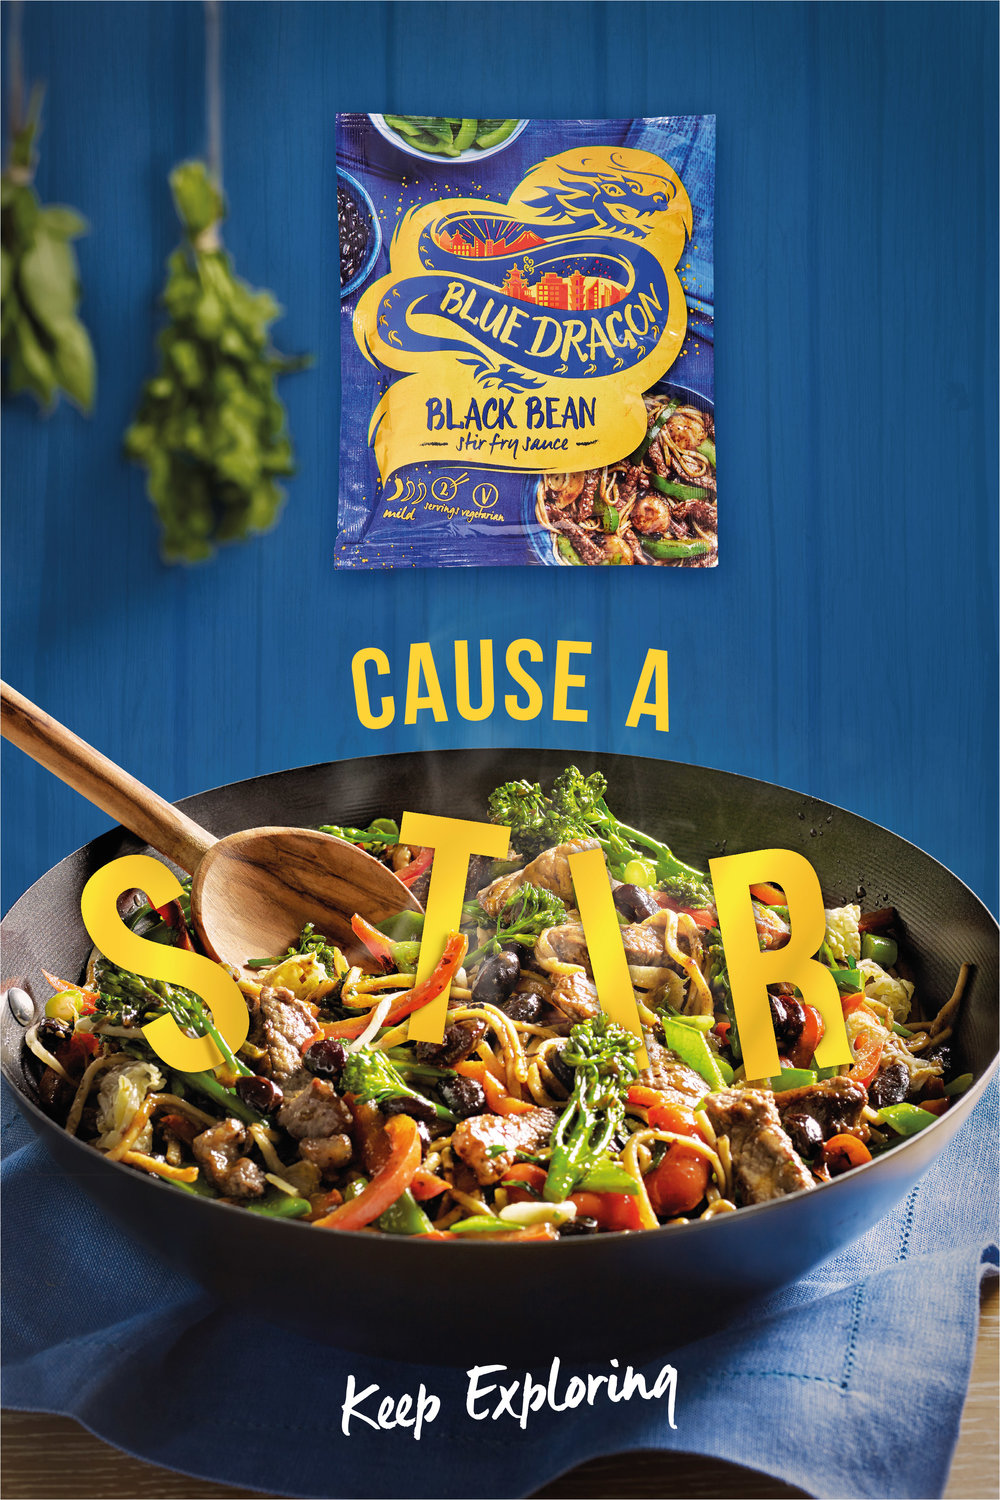 Blue Dragon advertising campaign shot for Reci.pe.  Food styling by Nico Ghirlando/Hers Agency